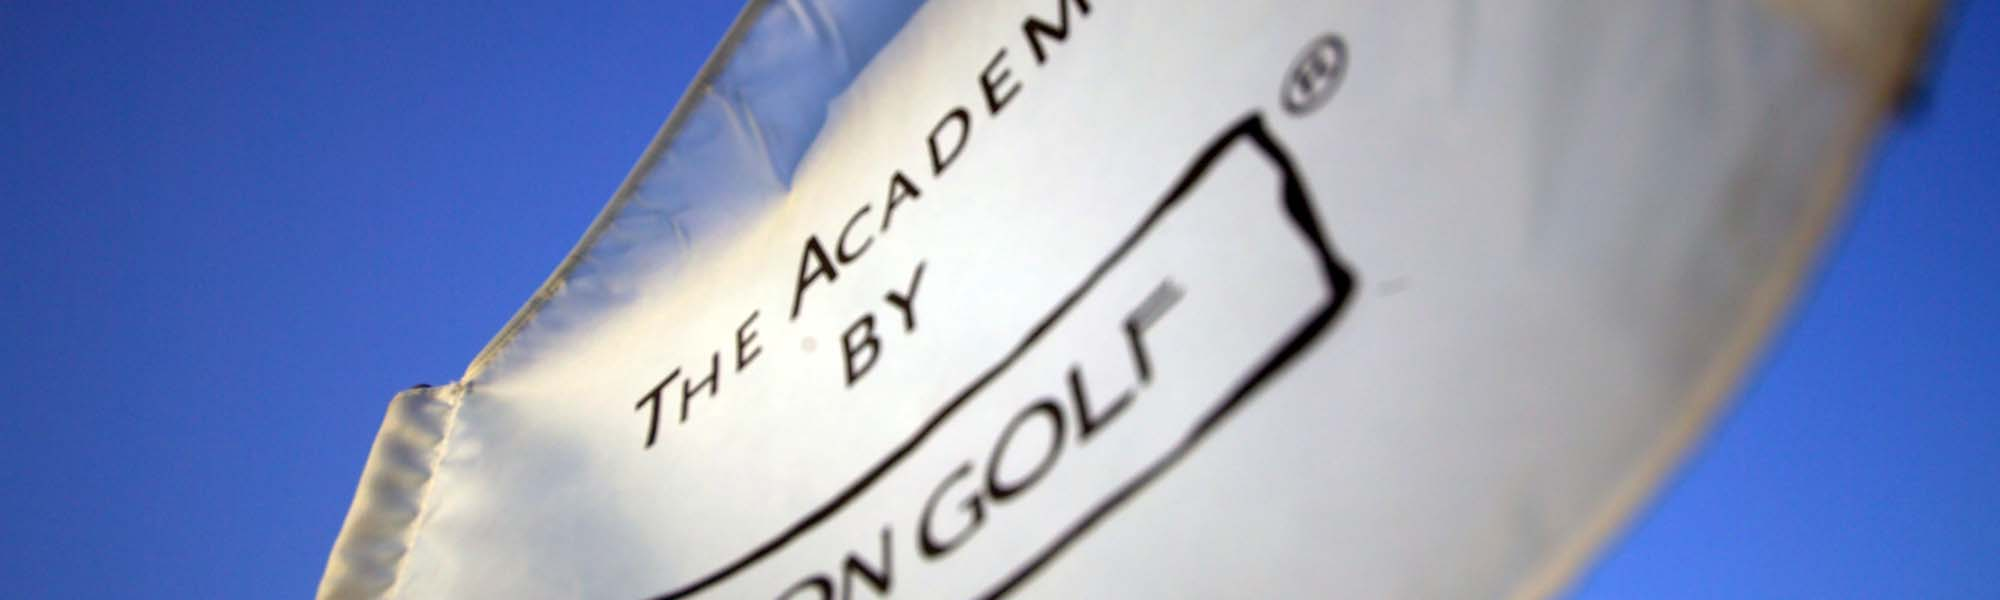 TM_0007_Academy%20By%20Troon%20Golf%20flag-%20small%20size